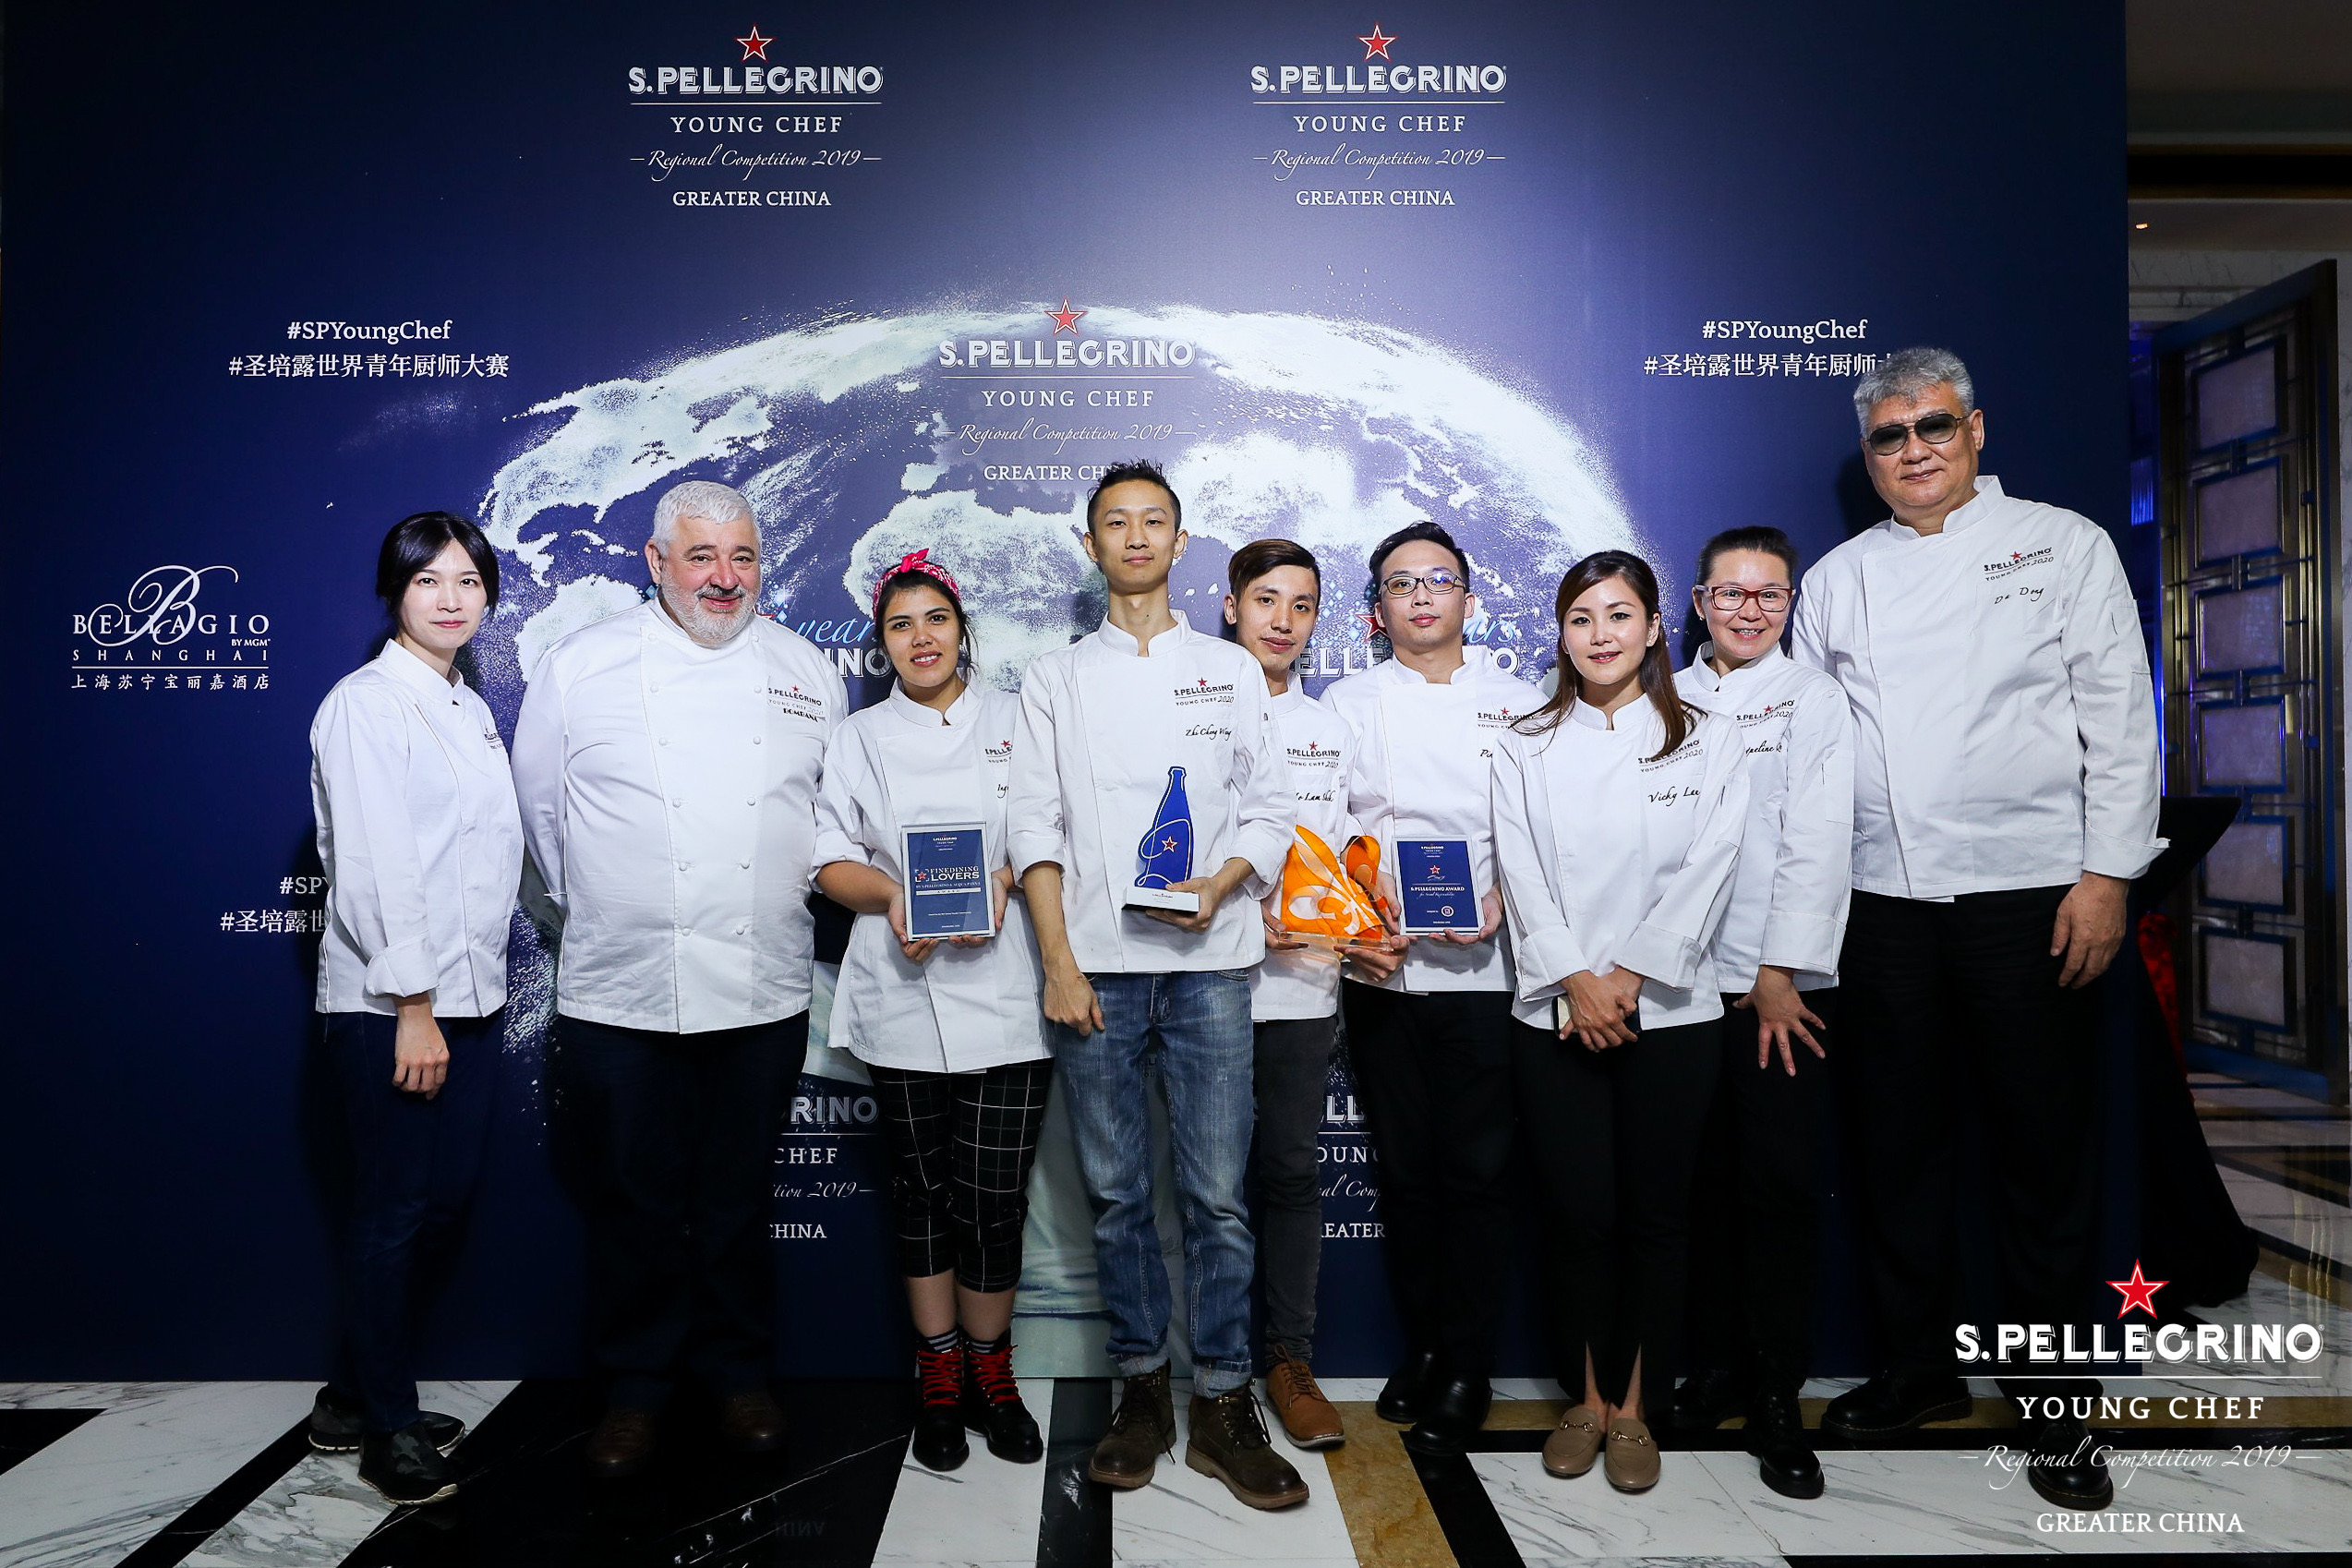 Greater China Final SanPellegrino Young Chef 2019-2020